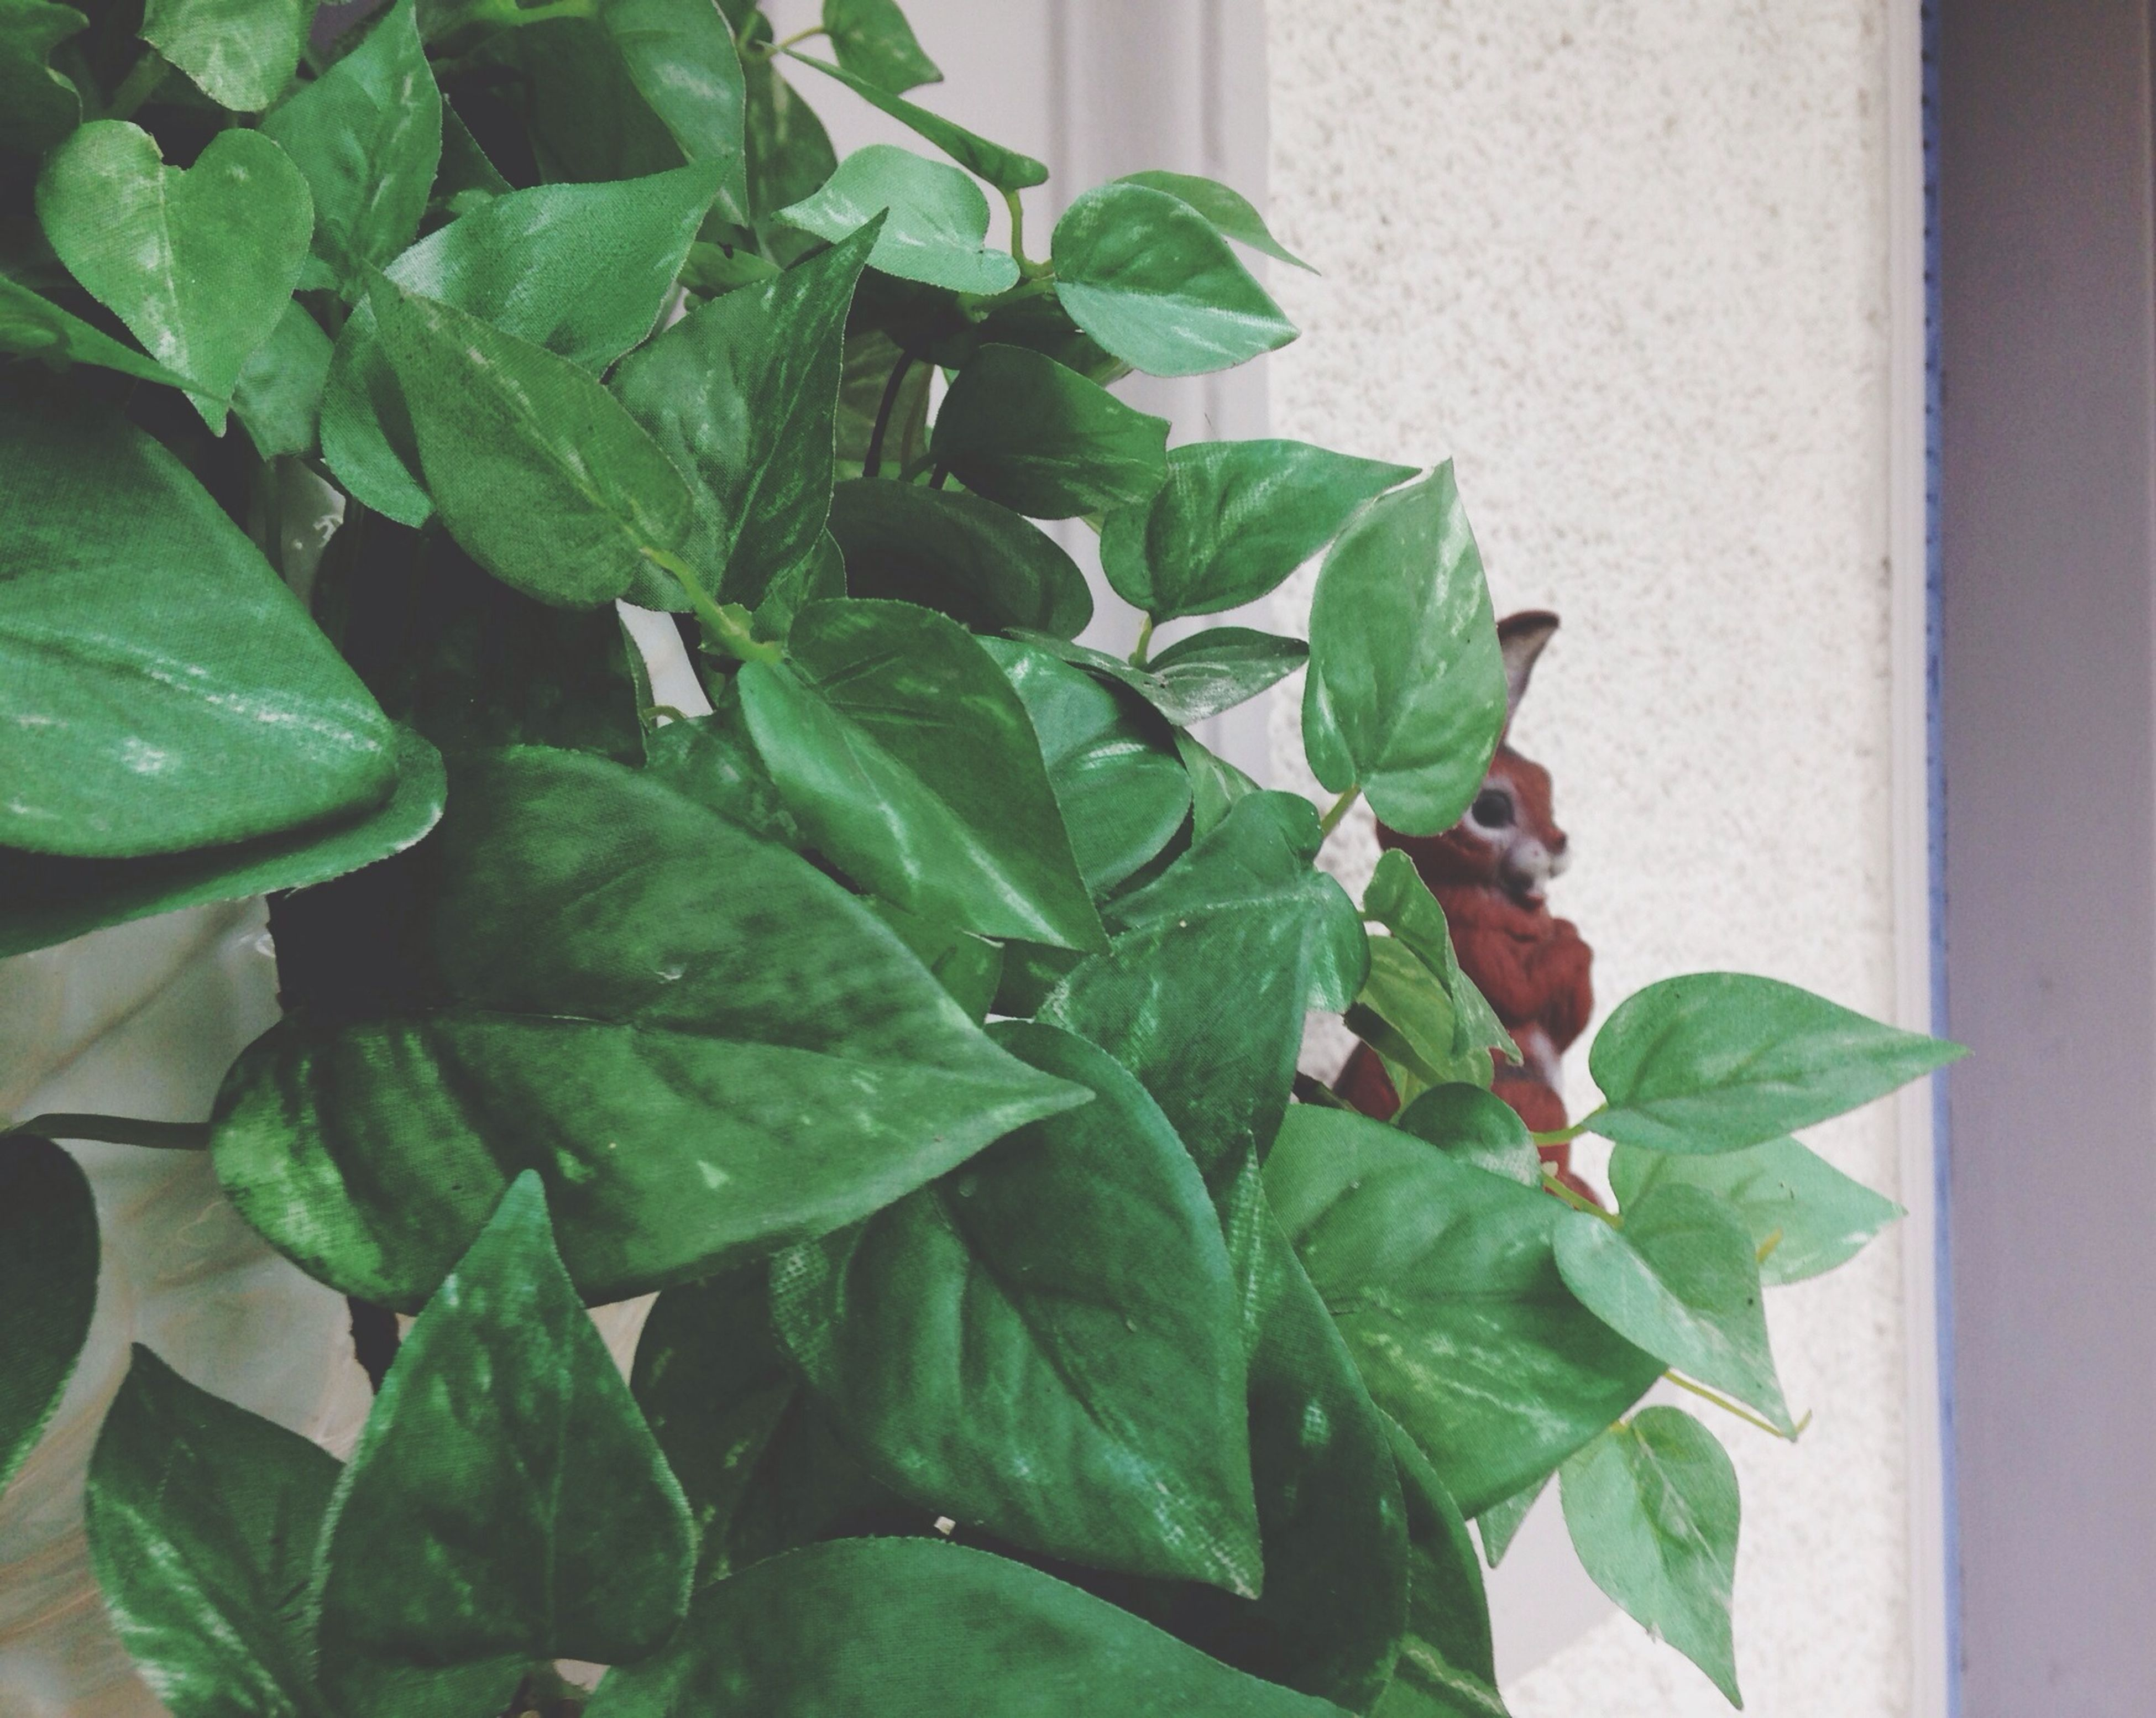 leaf, green color, plant, growth, potted plant, close-up, wall - building feature, green, growing, nature, leaf vein, ivy, built structure, leaves, day, no people, creeper plant, architecture, freshness, wall